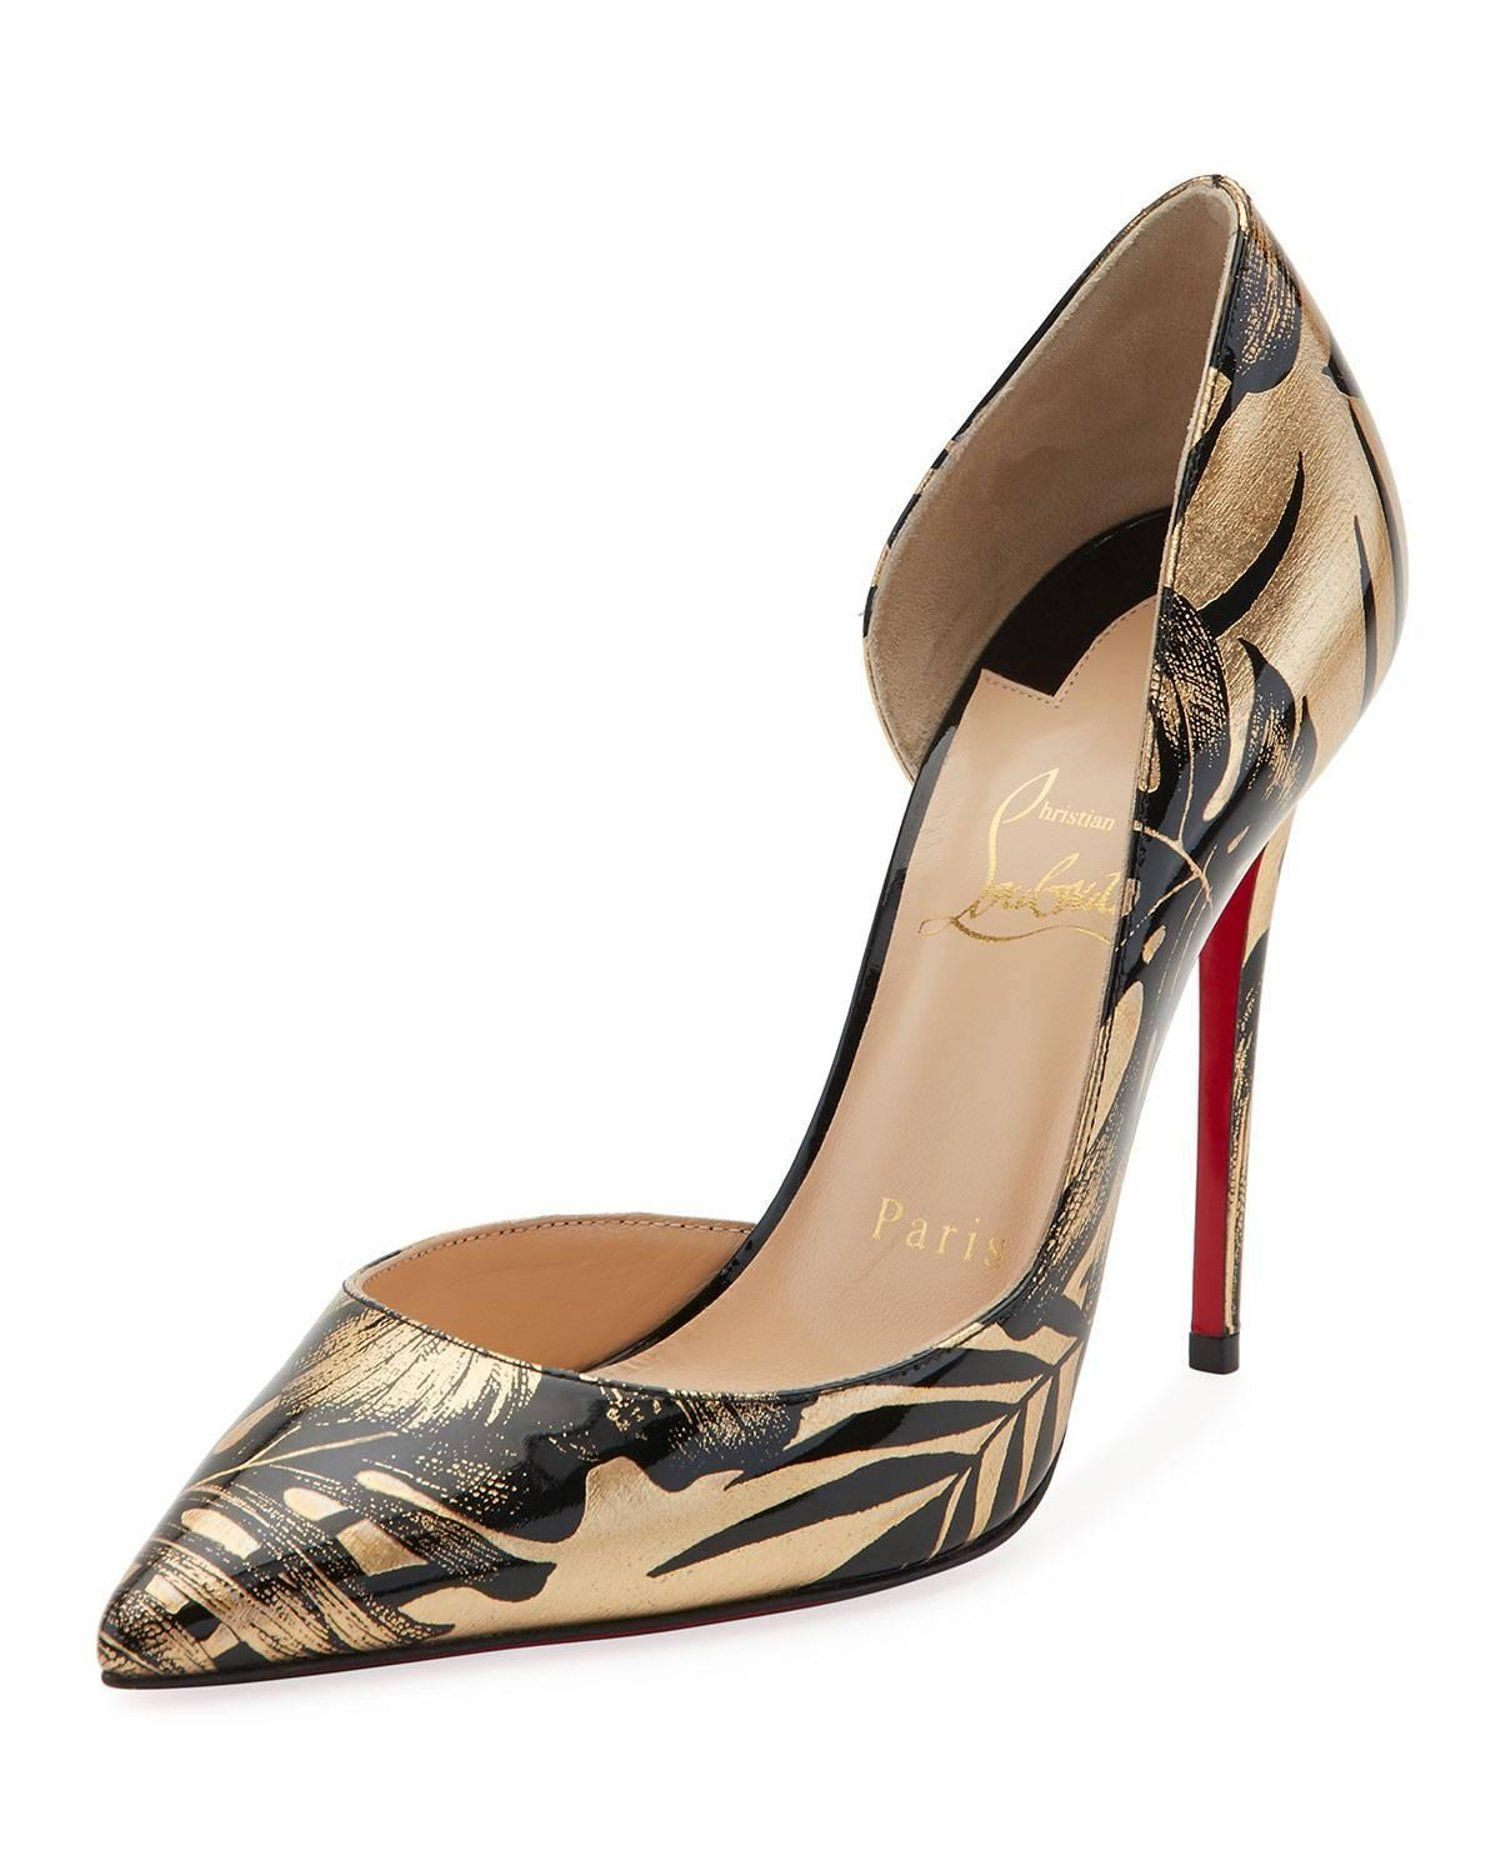 72ba76183ac Christian Louboutin New Black Gold Patent D orsay Evening Sandals Heels in  Box